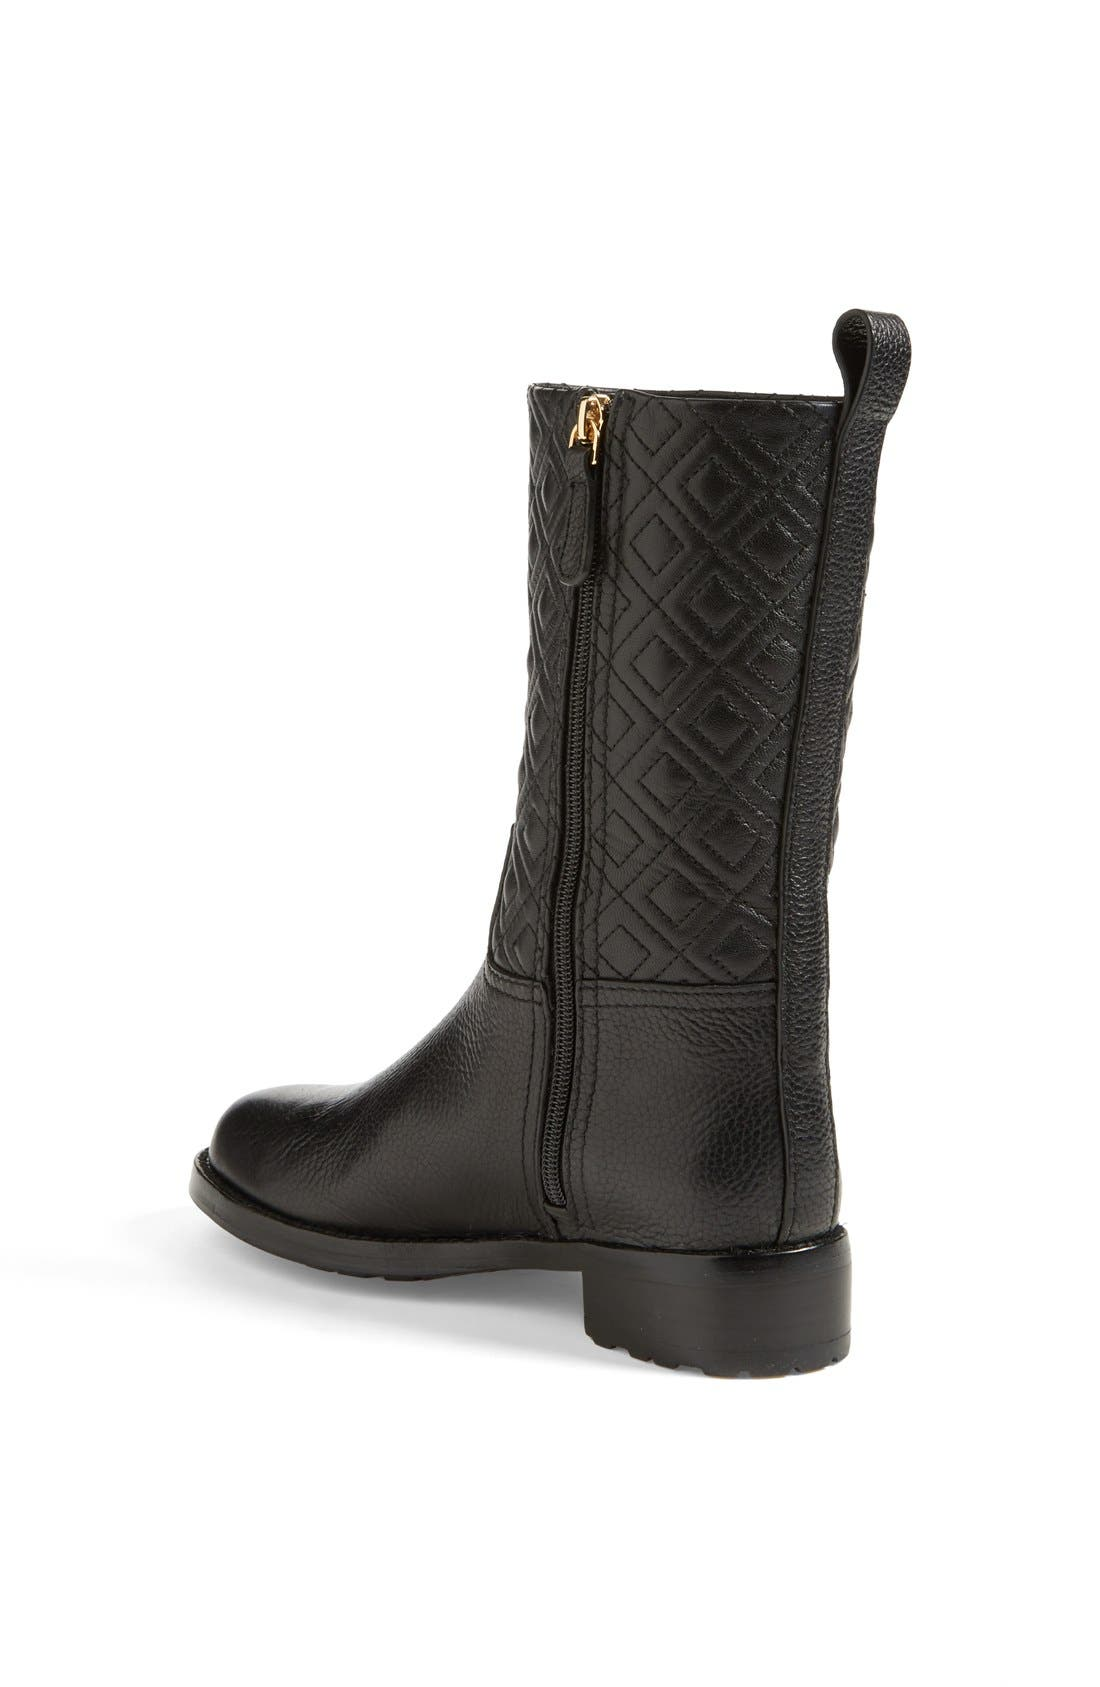 'Marion' Quilted Shaft Leather Boot,                             Alternate thumbnail 2, color,                             001